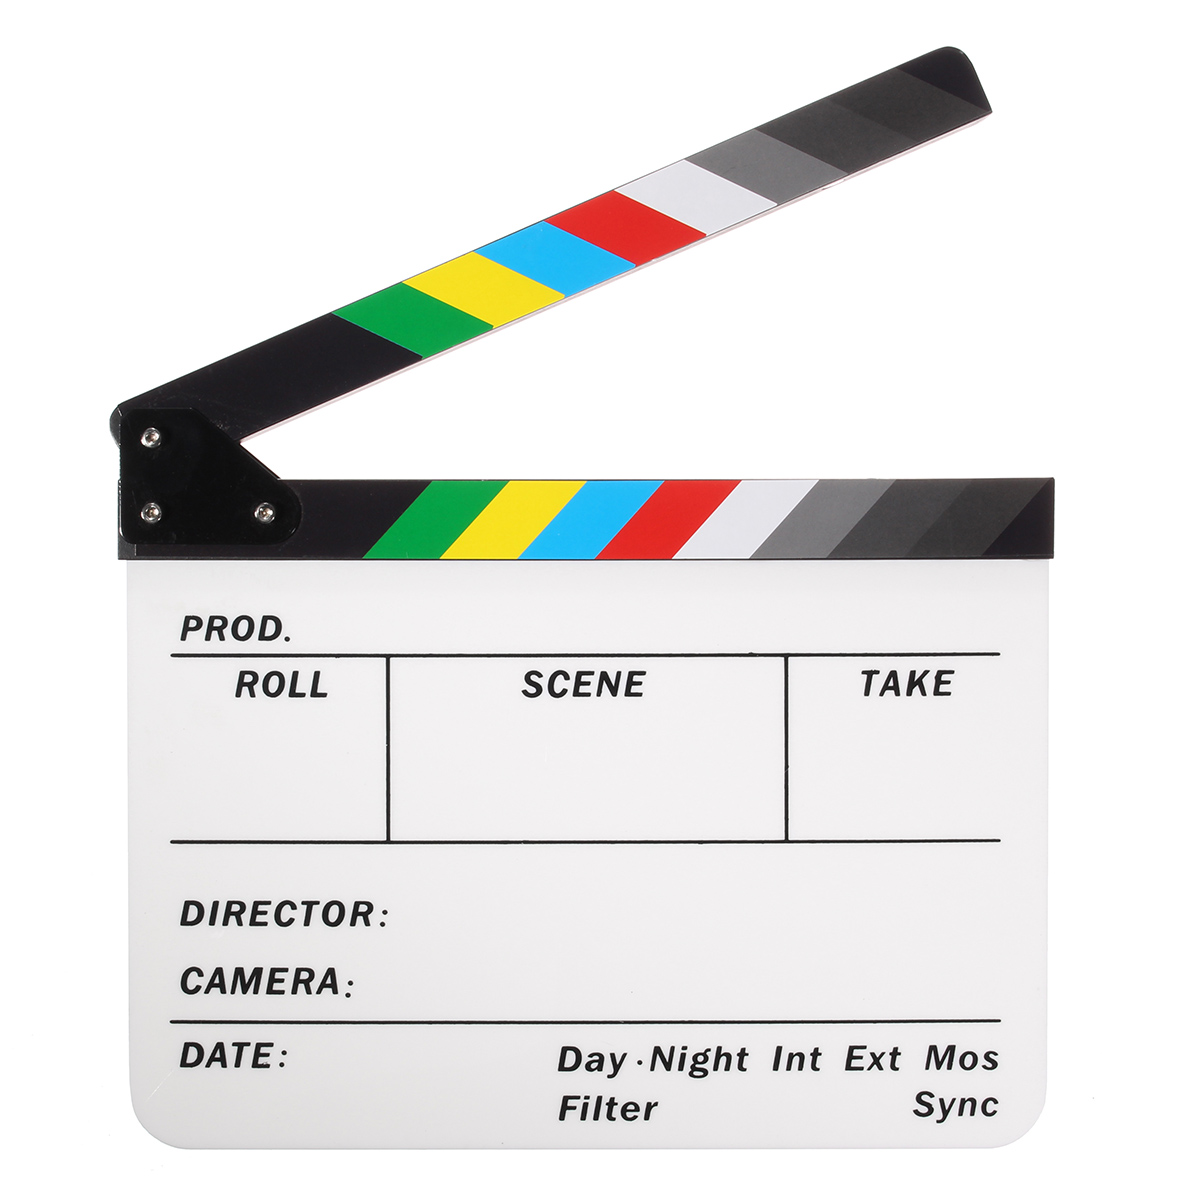 Professional Colorful Clapperboard Clapper Board Acrylic Dry Erase Director TV Movie Film Action Slate Clap Handmade Cut PropProfessional Colorful Clapperboard Clapper Board Acrylic Dry Erase Director TV Movie Film Action Slate Clap Handmade Cut Prop